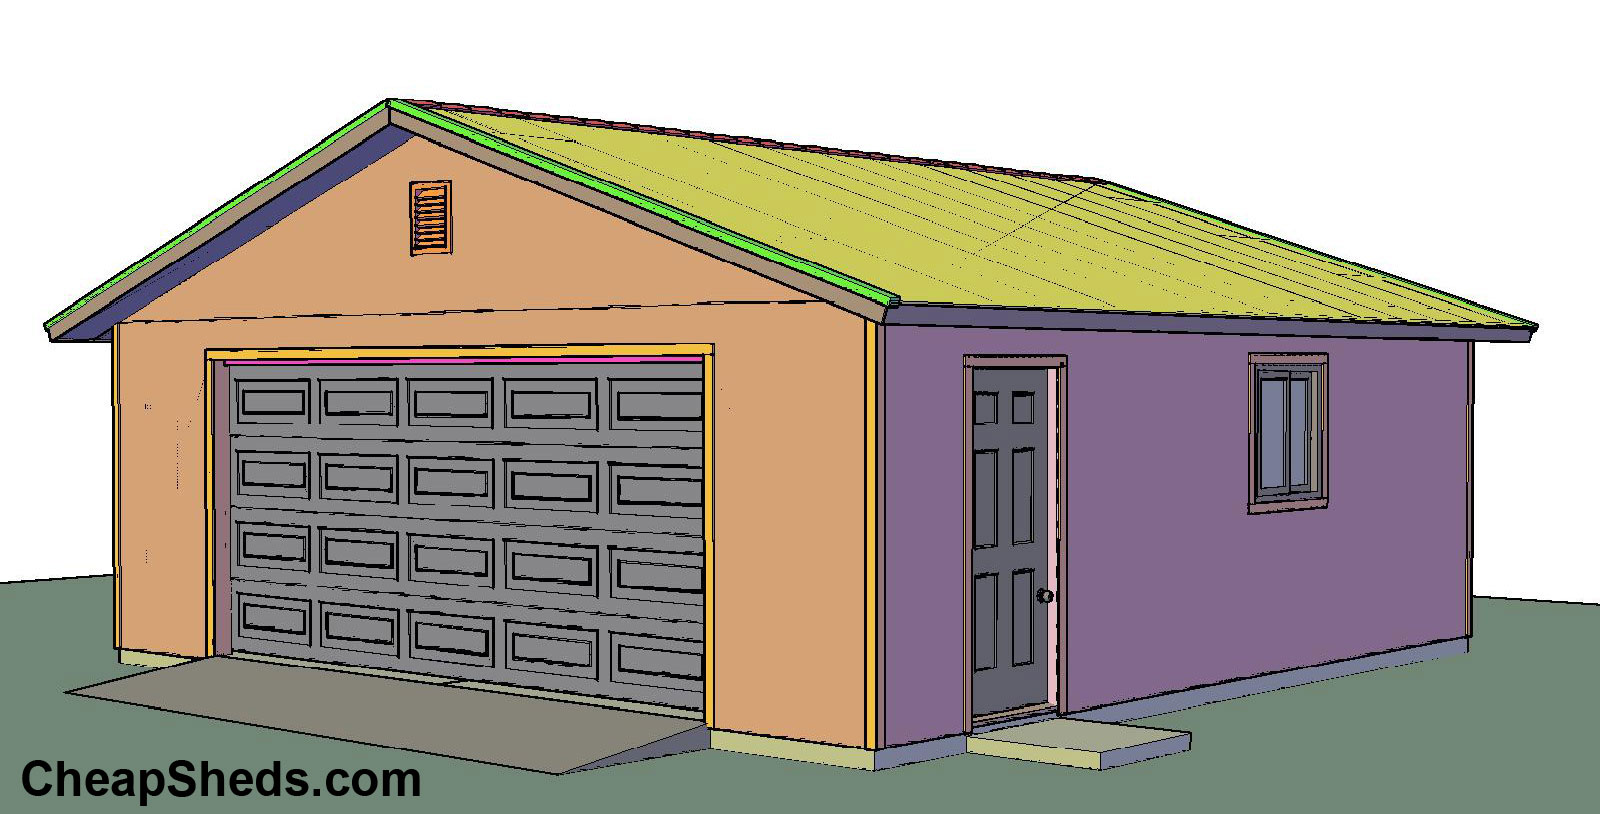 How to build and frame a 1 2 3 4 car garage plans One car garage plans